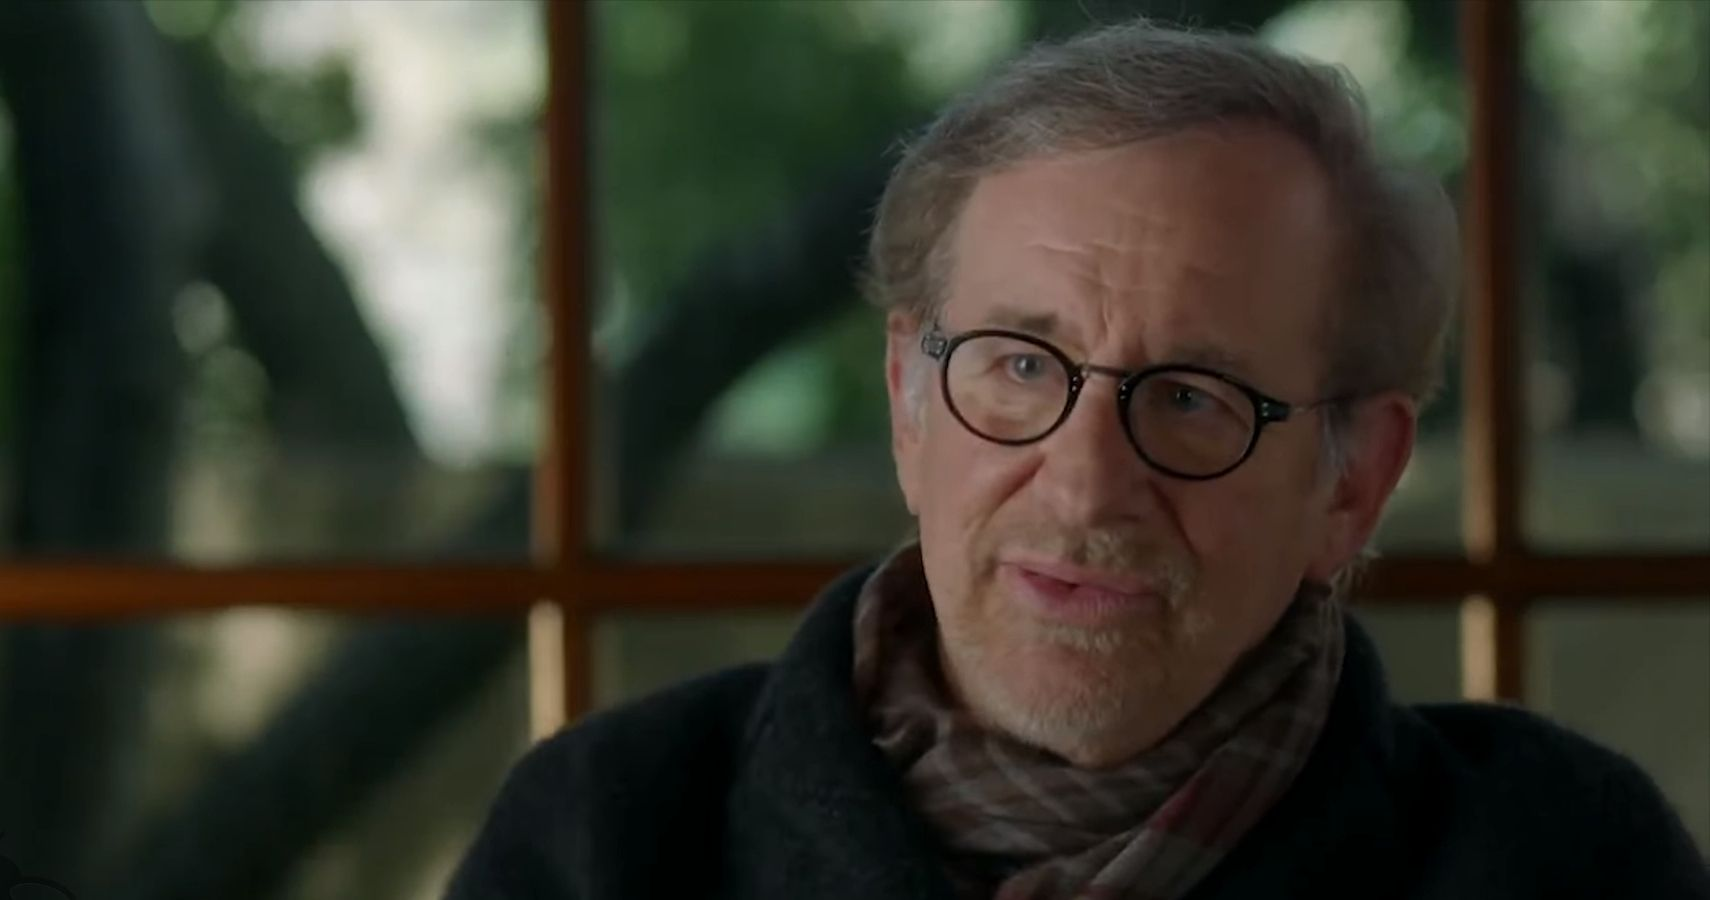 Steven Spielberg Is Writing And Directing A Movie Loosely Based On His Own Childhood